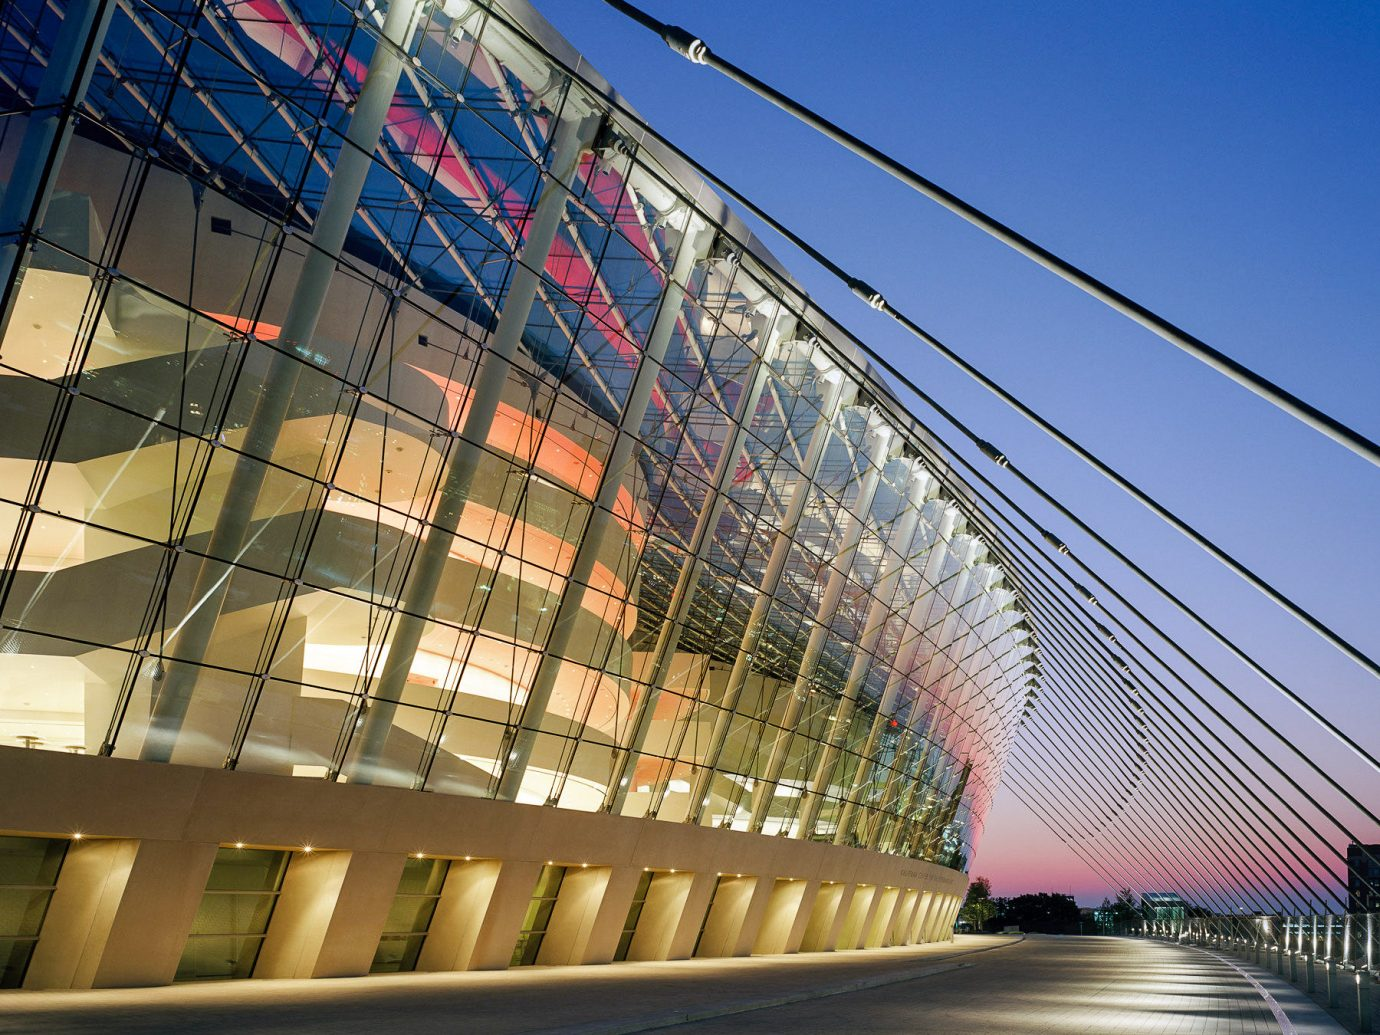 Kauffman Center for the Performing Arts exterior